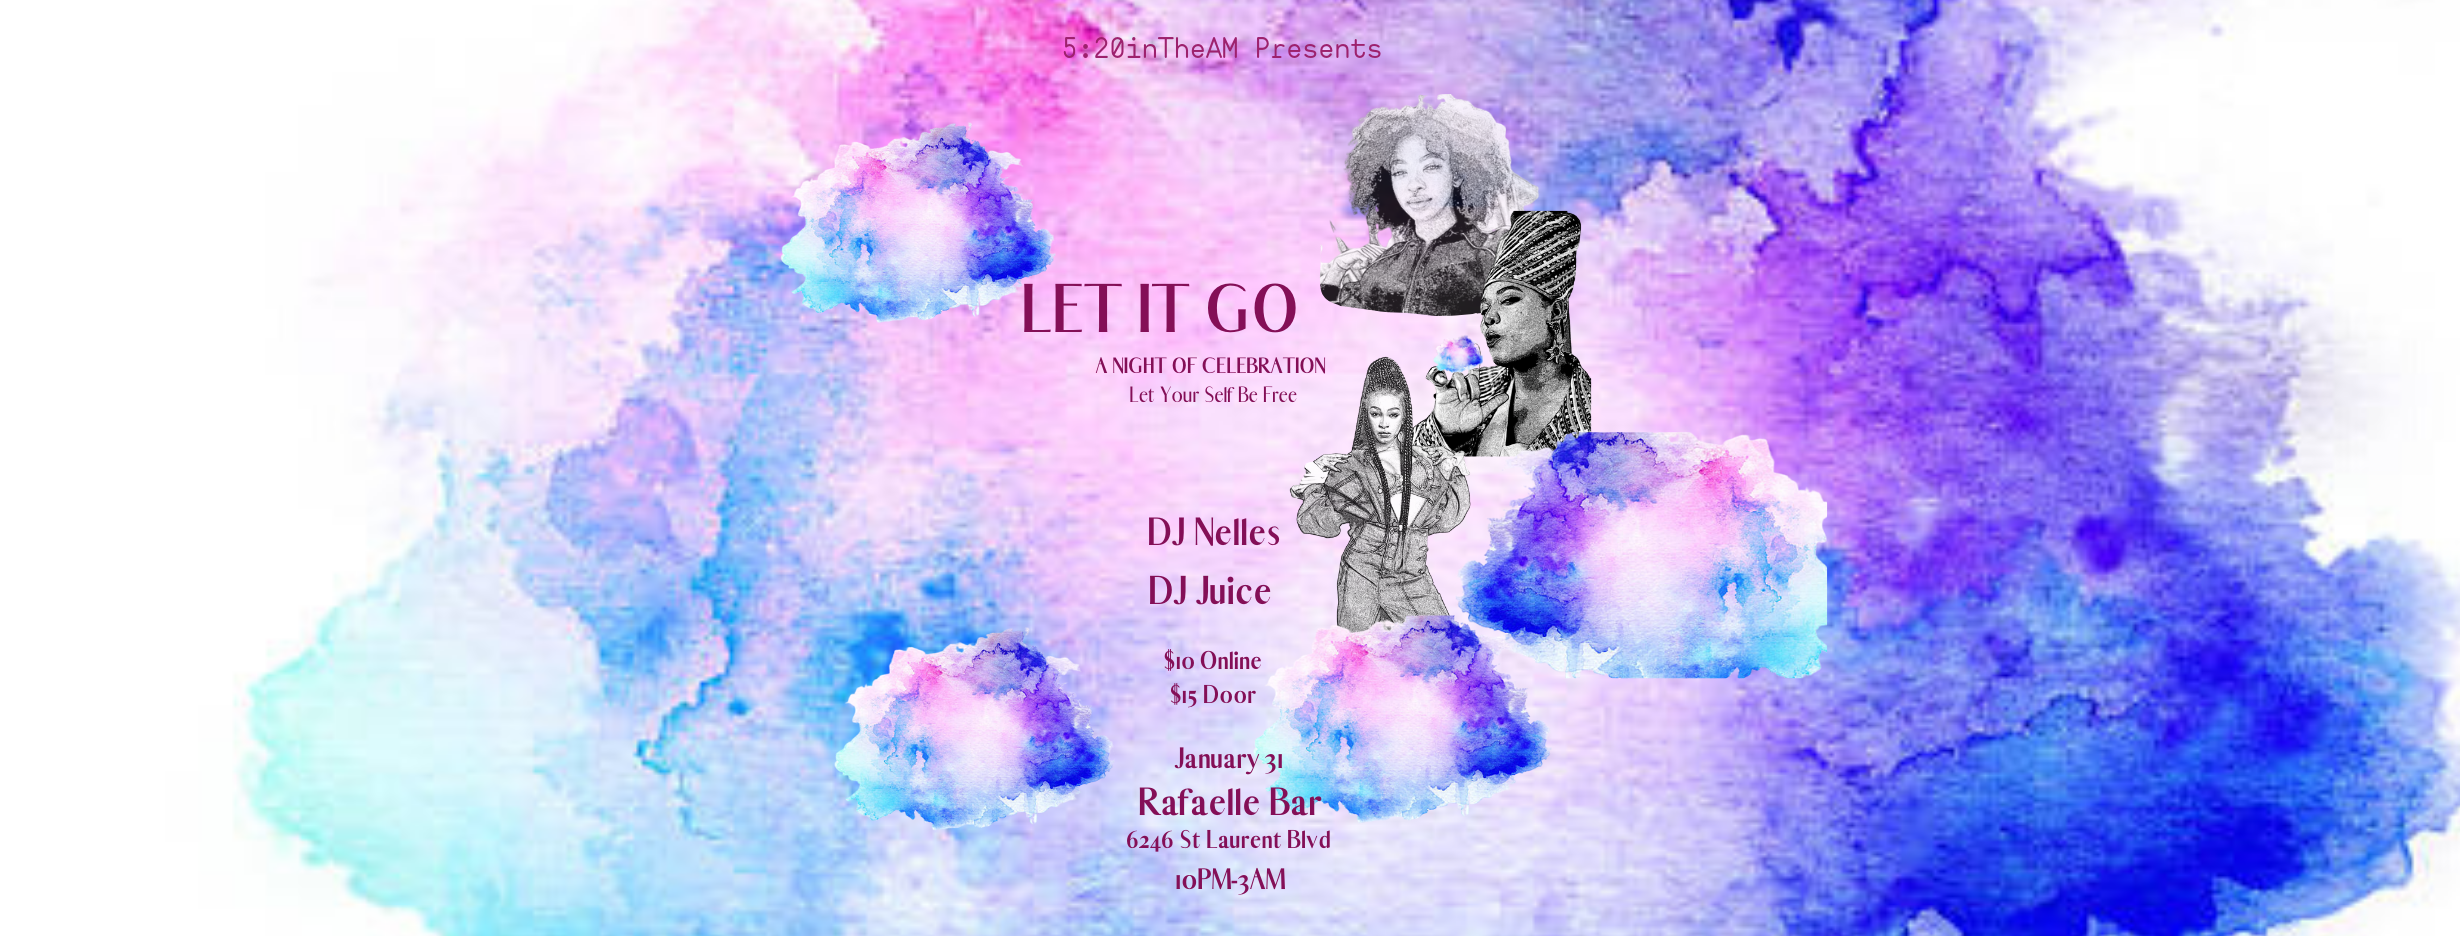 5:20inTheAM Presents: LET IT GO